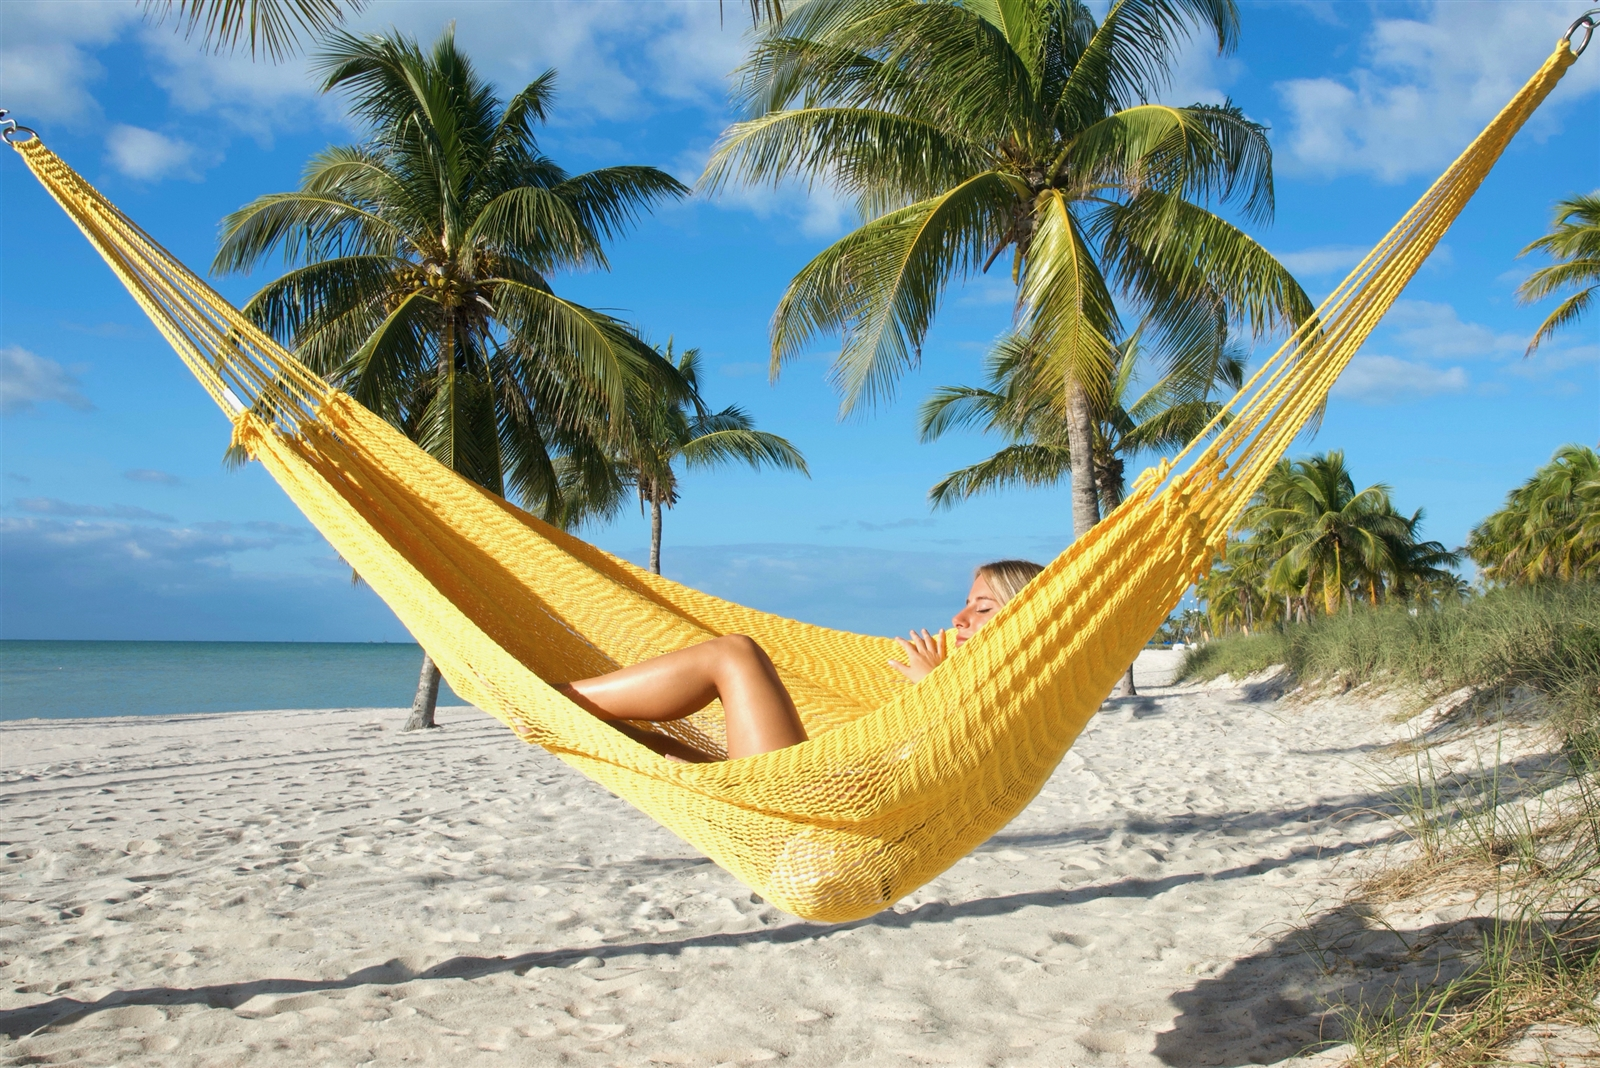 software www hammocks view at hammock new hammockscom designs com property engaging